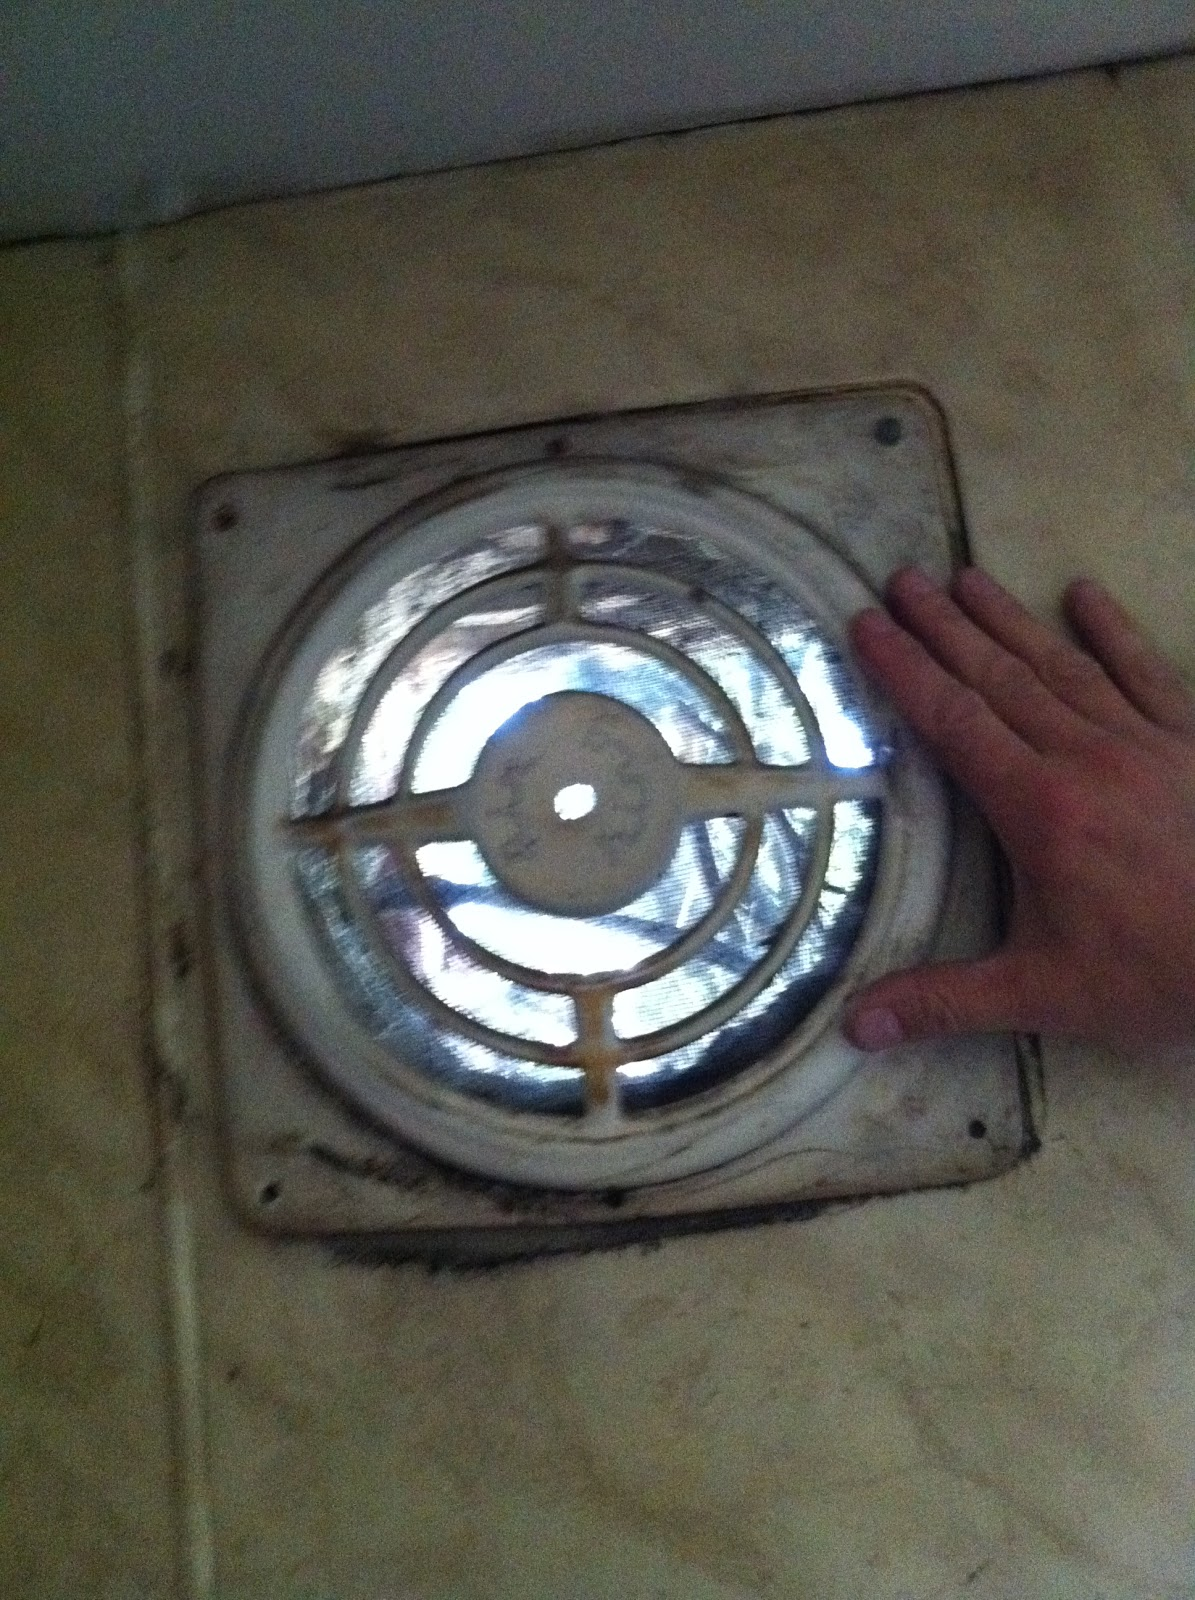 Kitchen Exhaust Fan In Nepal Of Antique Kitchen Exhaust Fans Home Design And Decor Reviews